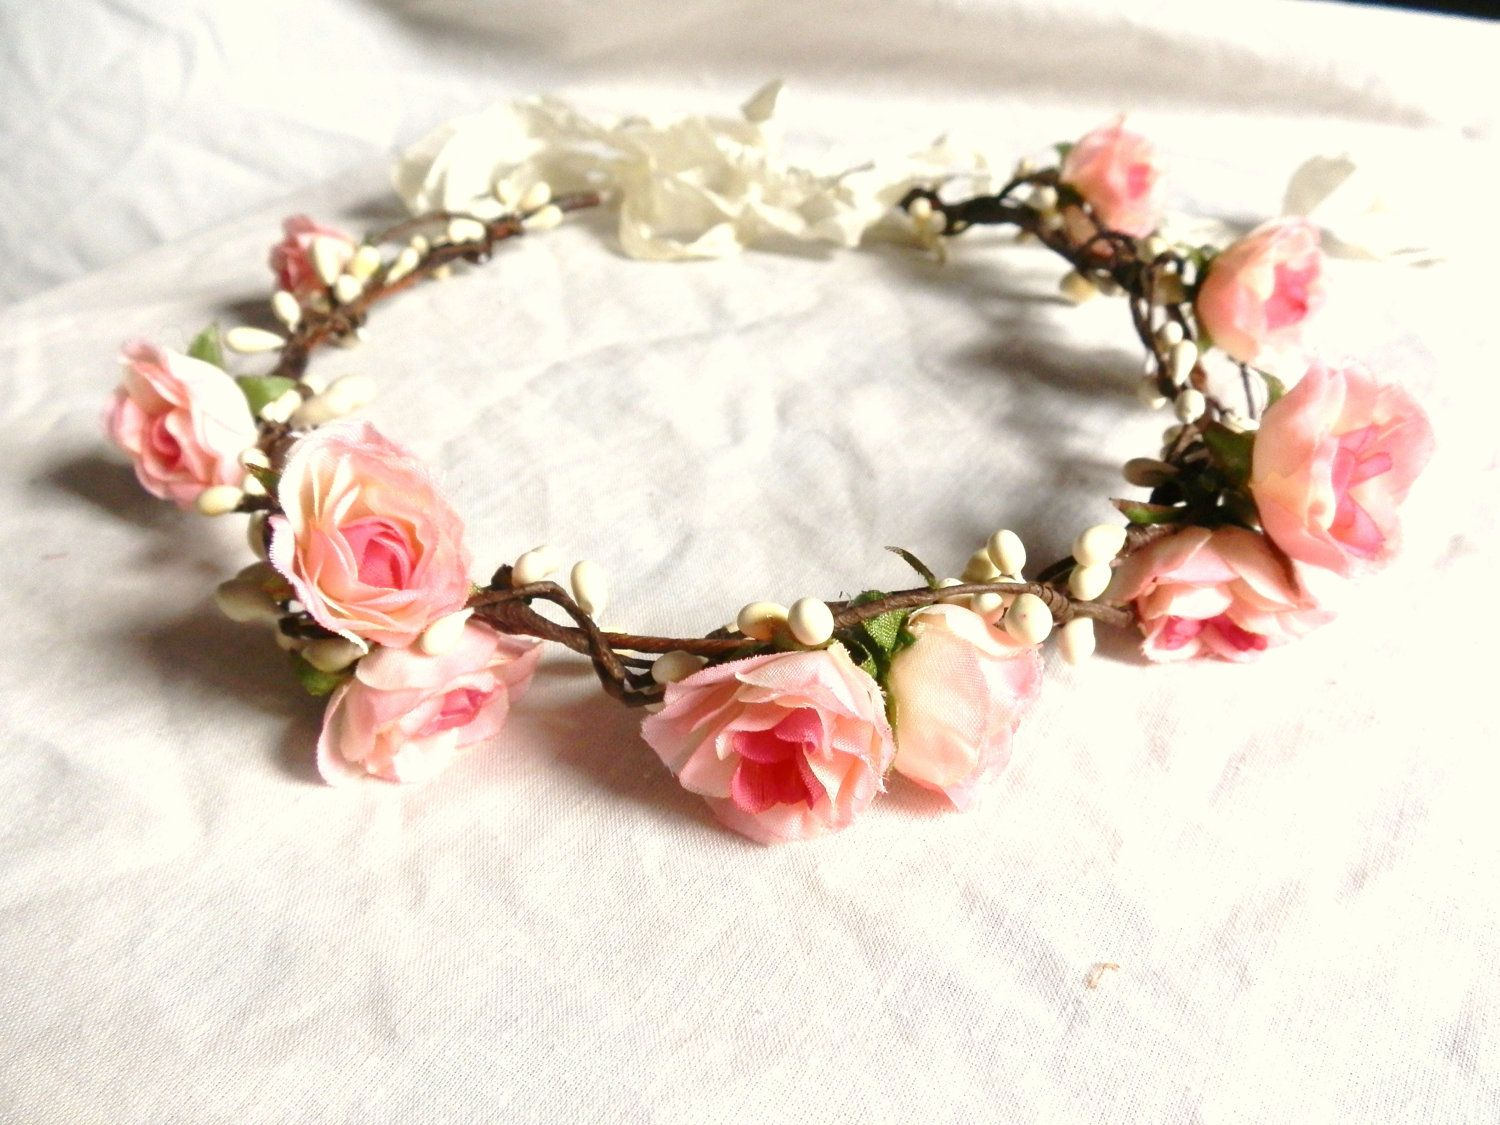 Buy Flower Crown Request A Custom Order And Have Something Made